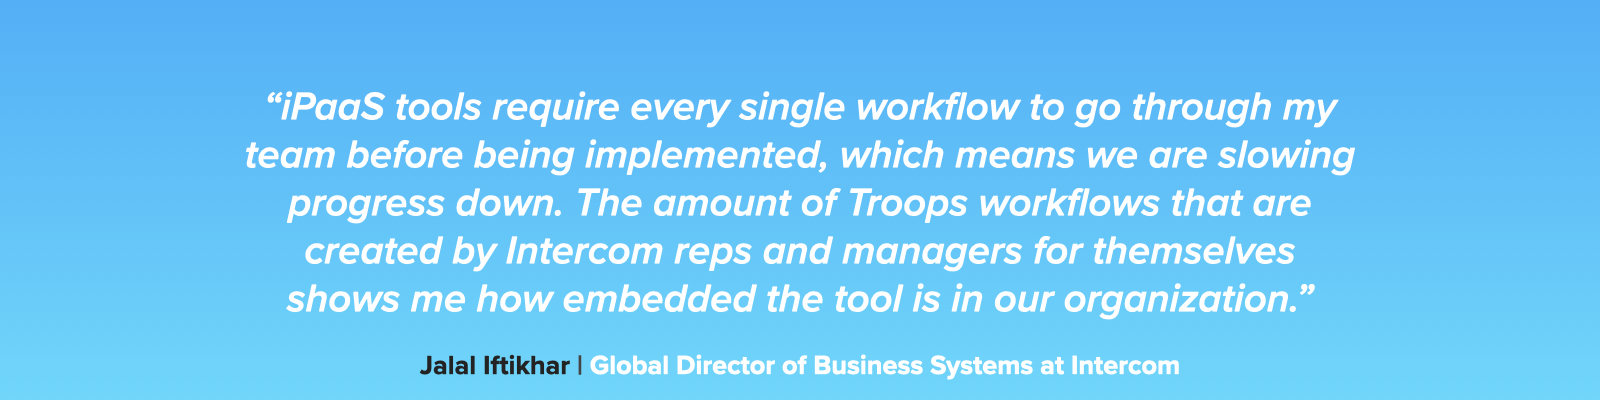 ipaas v. troops quote 3.001